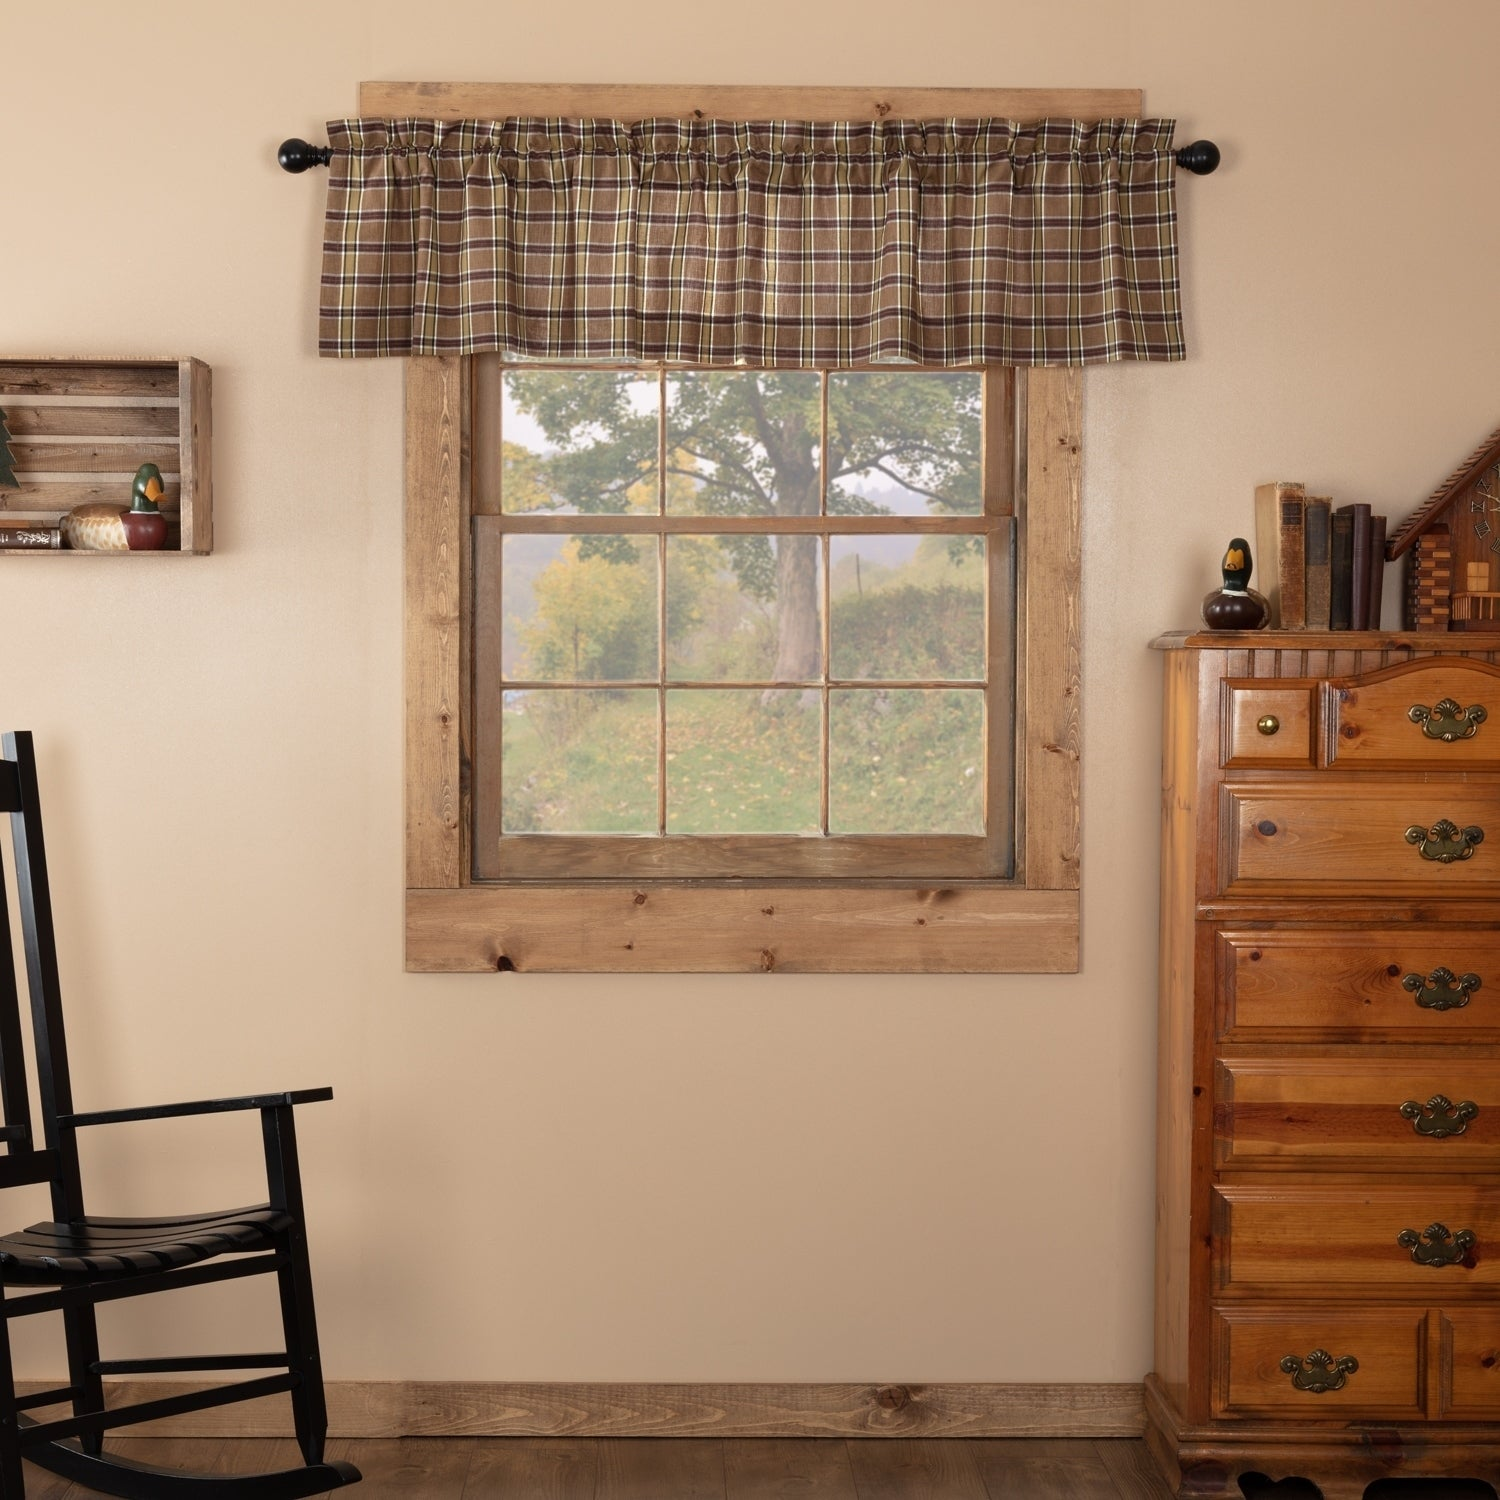 Details about Tan Rustic Kitchen Curtains VHC Wyatt Valance Rod Pocket  Raven, Khaki, Moss Gree